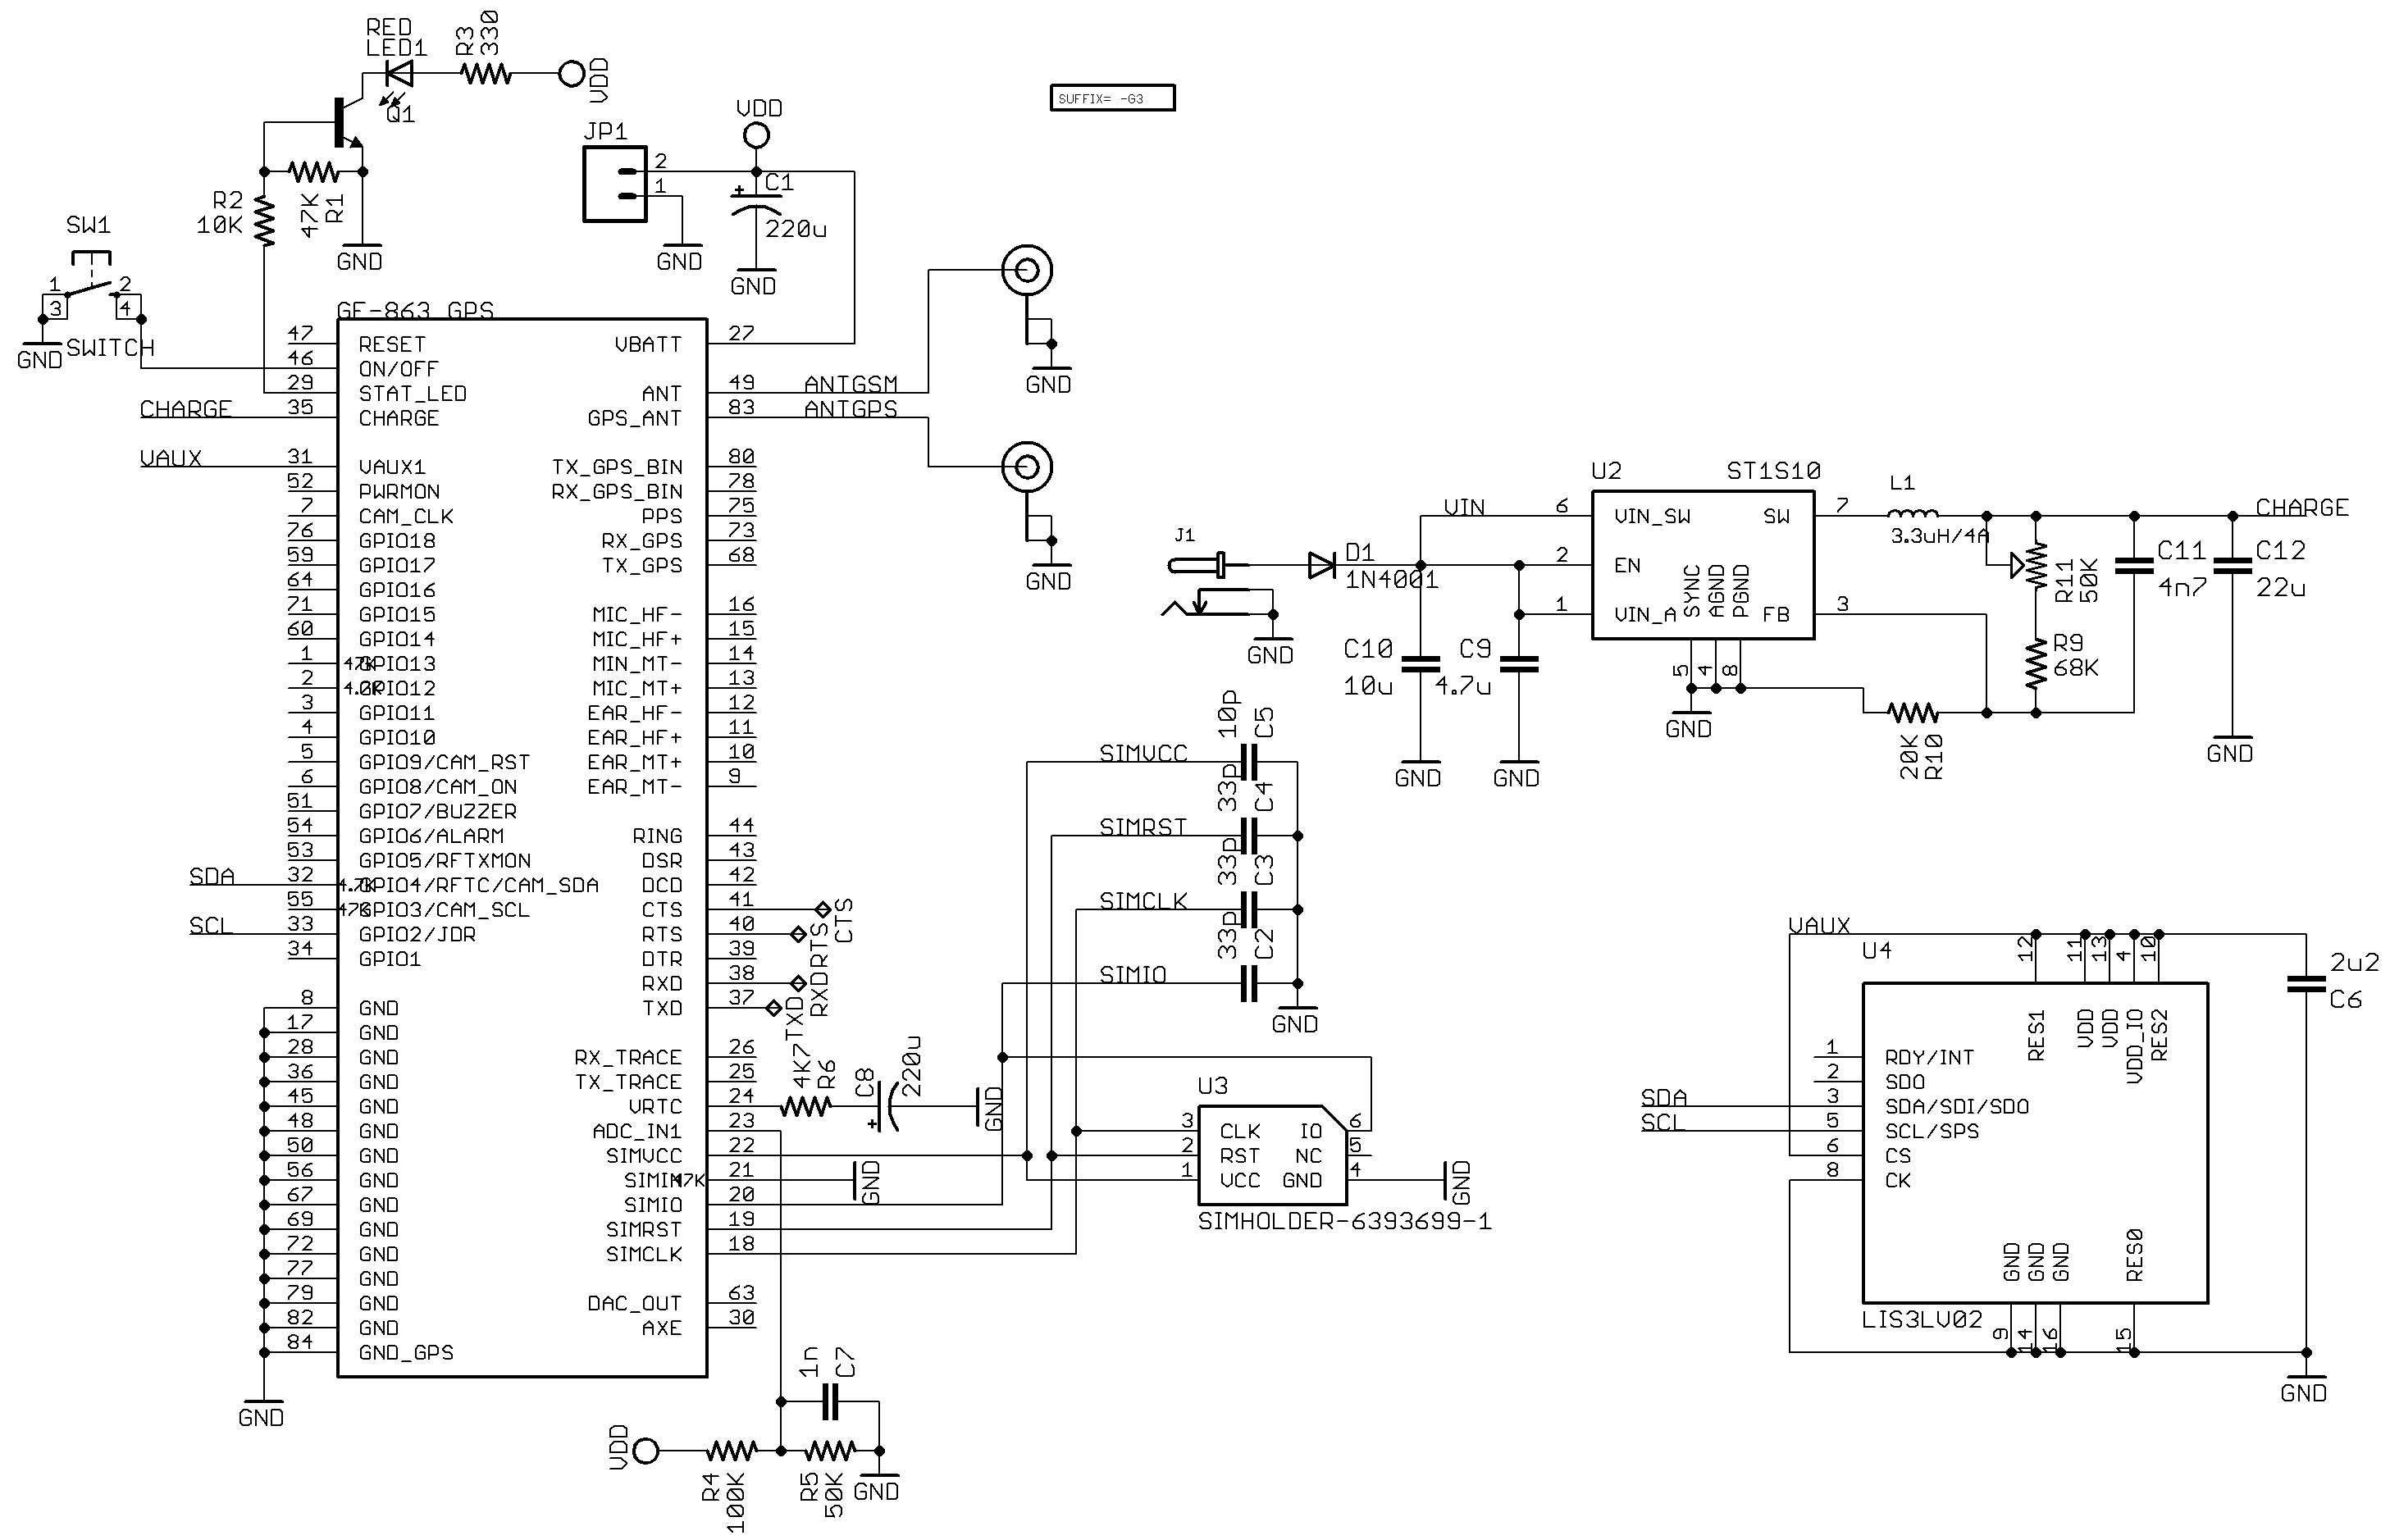 GPS SCHEMATIC - Auto Electrical Wiring Diagram on a/c compressor wiring diagram, air pressure diagram, pressure tank wiring diagram, compressor pressure switches sale, rv air conditioner wiring diagram, copeland compressor wiring diagram, arb compressor wiring diagram, air compressor controls diagram, electric fuel pump wiring diagram, truck air compressor air diagram, circuit wiring diagram, air compressor installation diagram, air compressor wiring diagram, compressor pin wiring diagram, viair compressor wiring diagram, compressor relay diagram, ac wiring diagram, refrigeration compressor wiring diagram, water pump pressure switch diagram, ac compressor wire diagram,